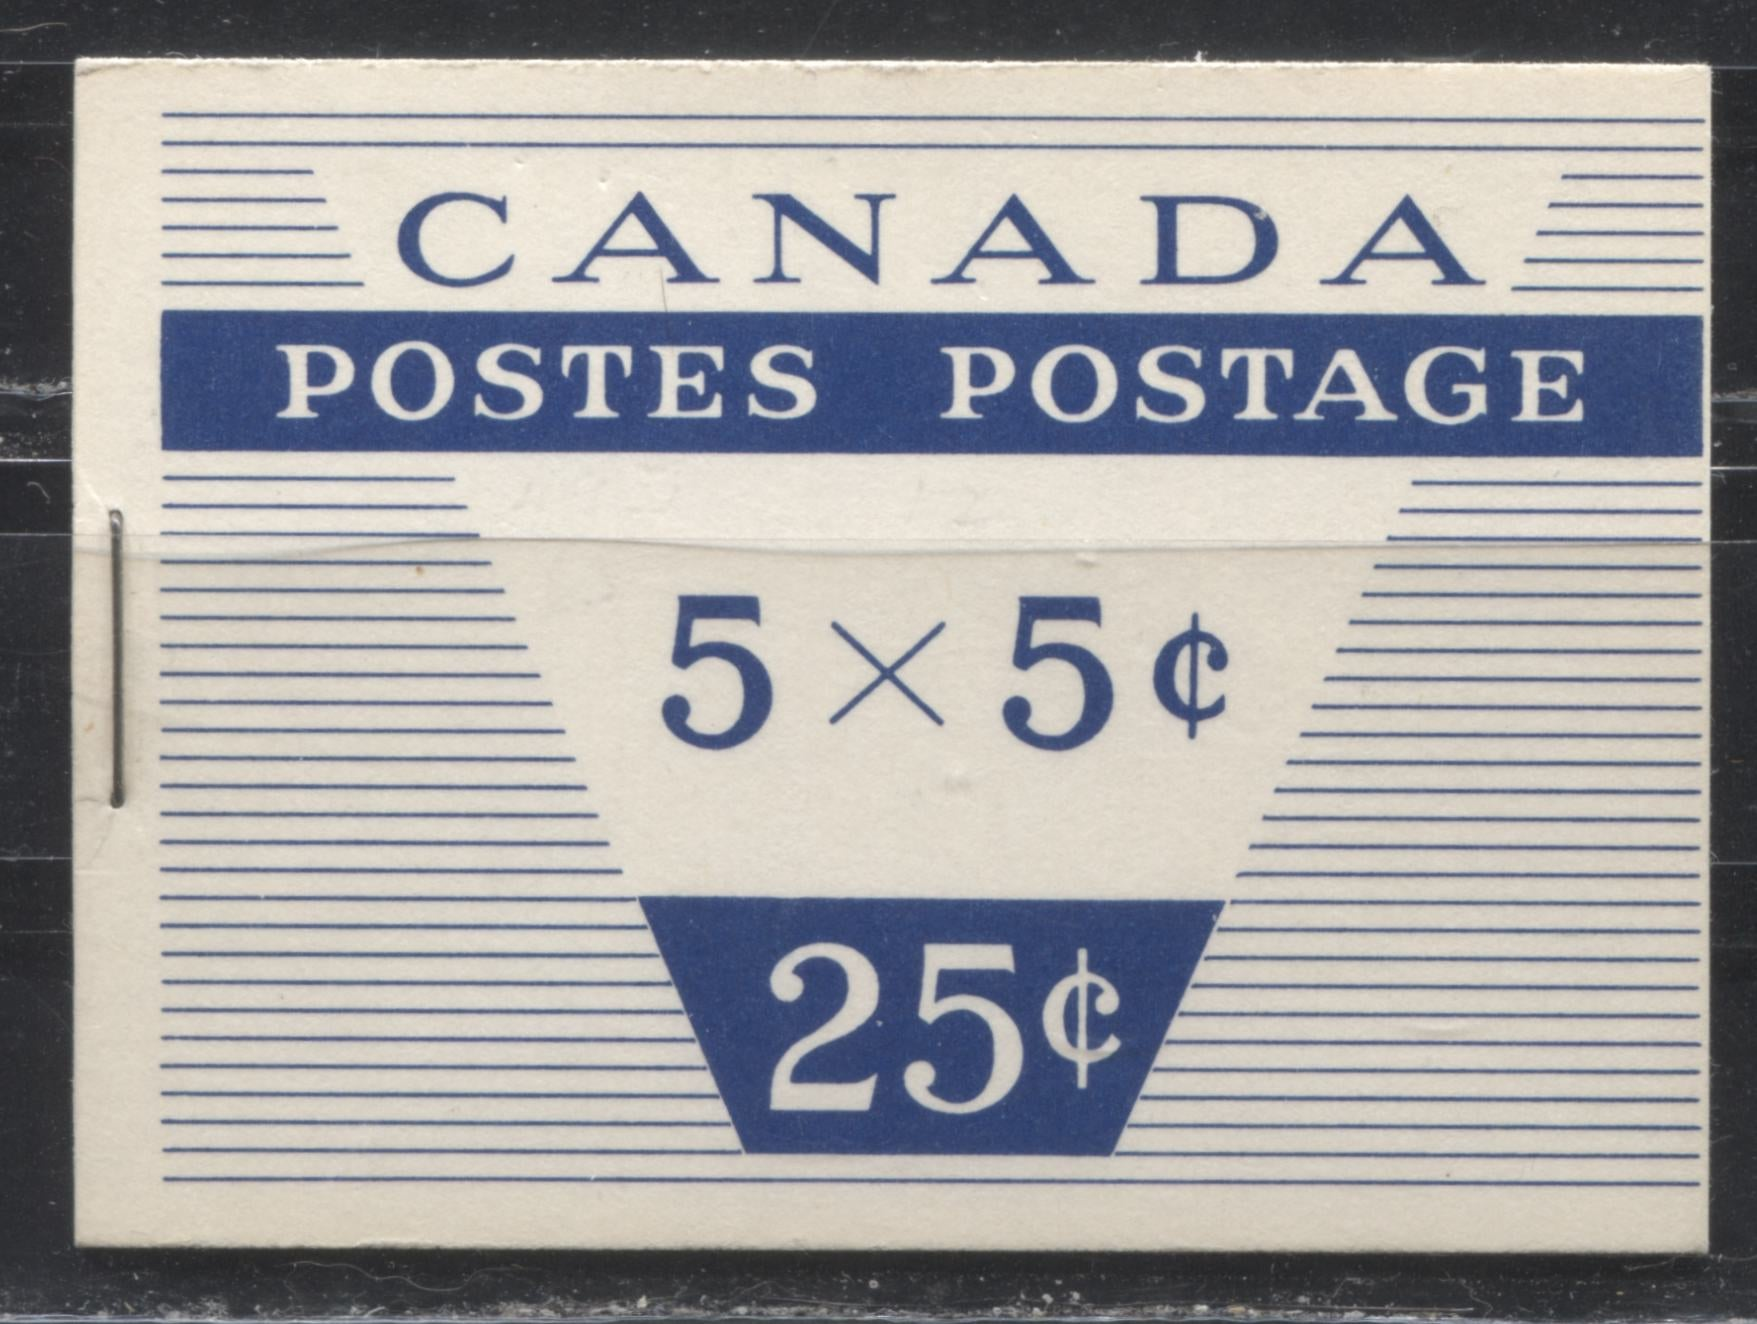 Canada McCann #BK52k (Unitrade #BK52c) 1962-1967 Cameo Issue, a VFNH Booklet Containing A 5c Pane of 5 + Label, Type III Cover, DF Ivory Front Cover, DF Grayish White Back Cover, LF Pane, No Interleaf